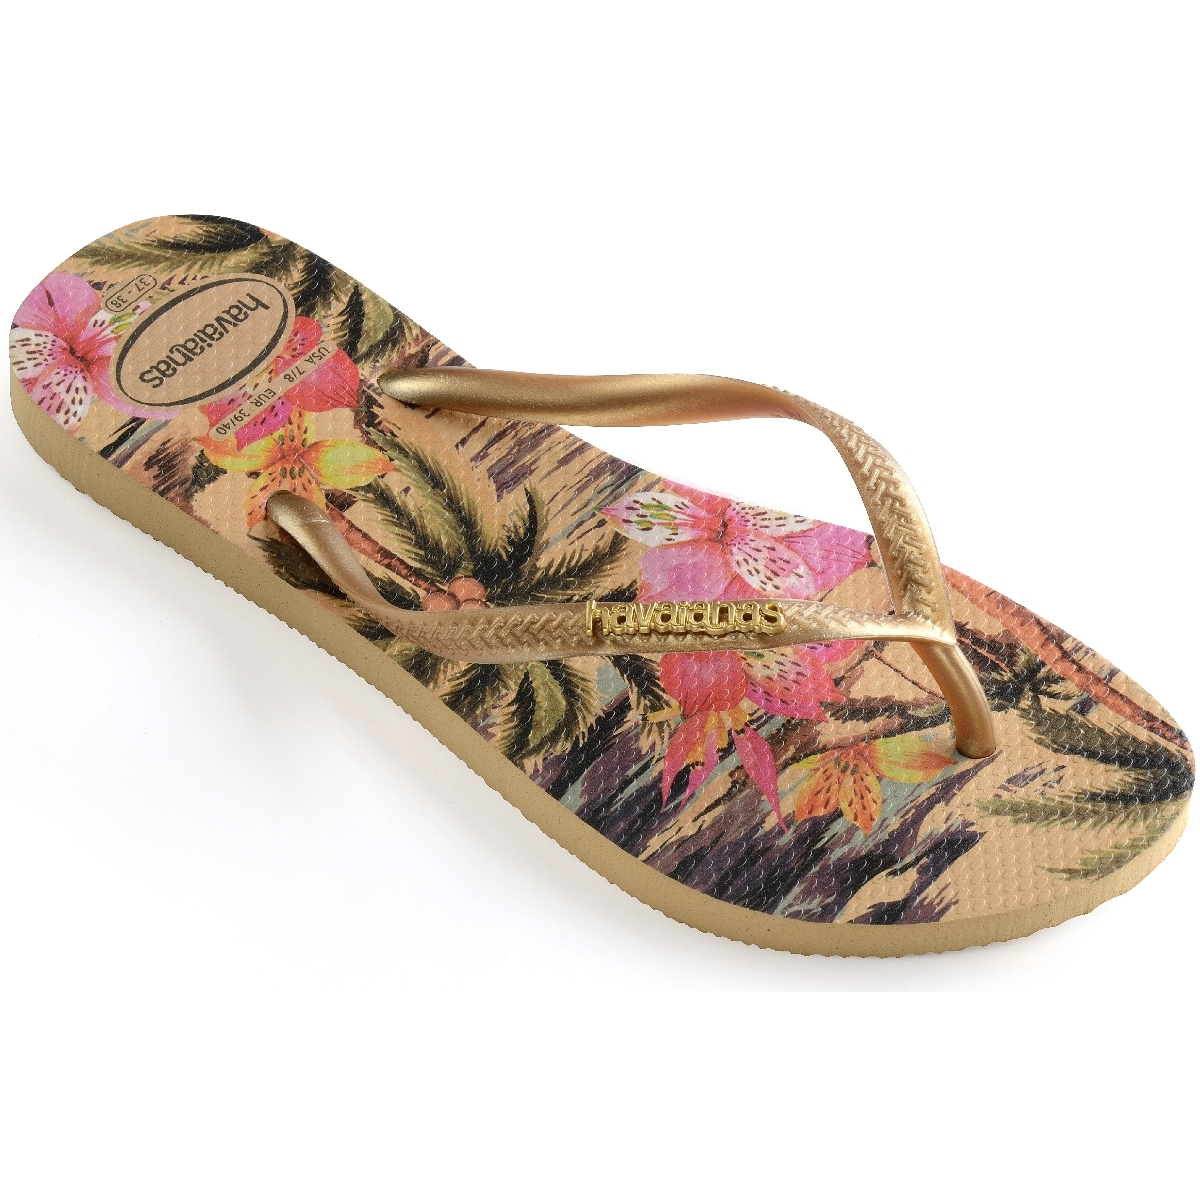 Tong havaianas femme or